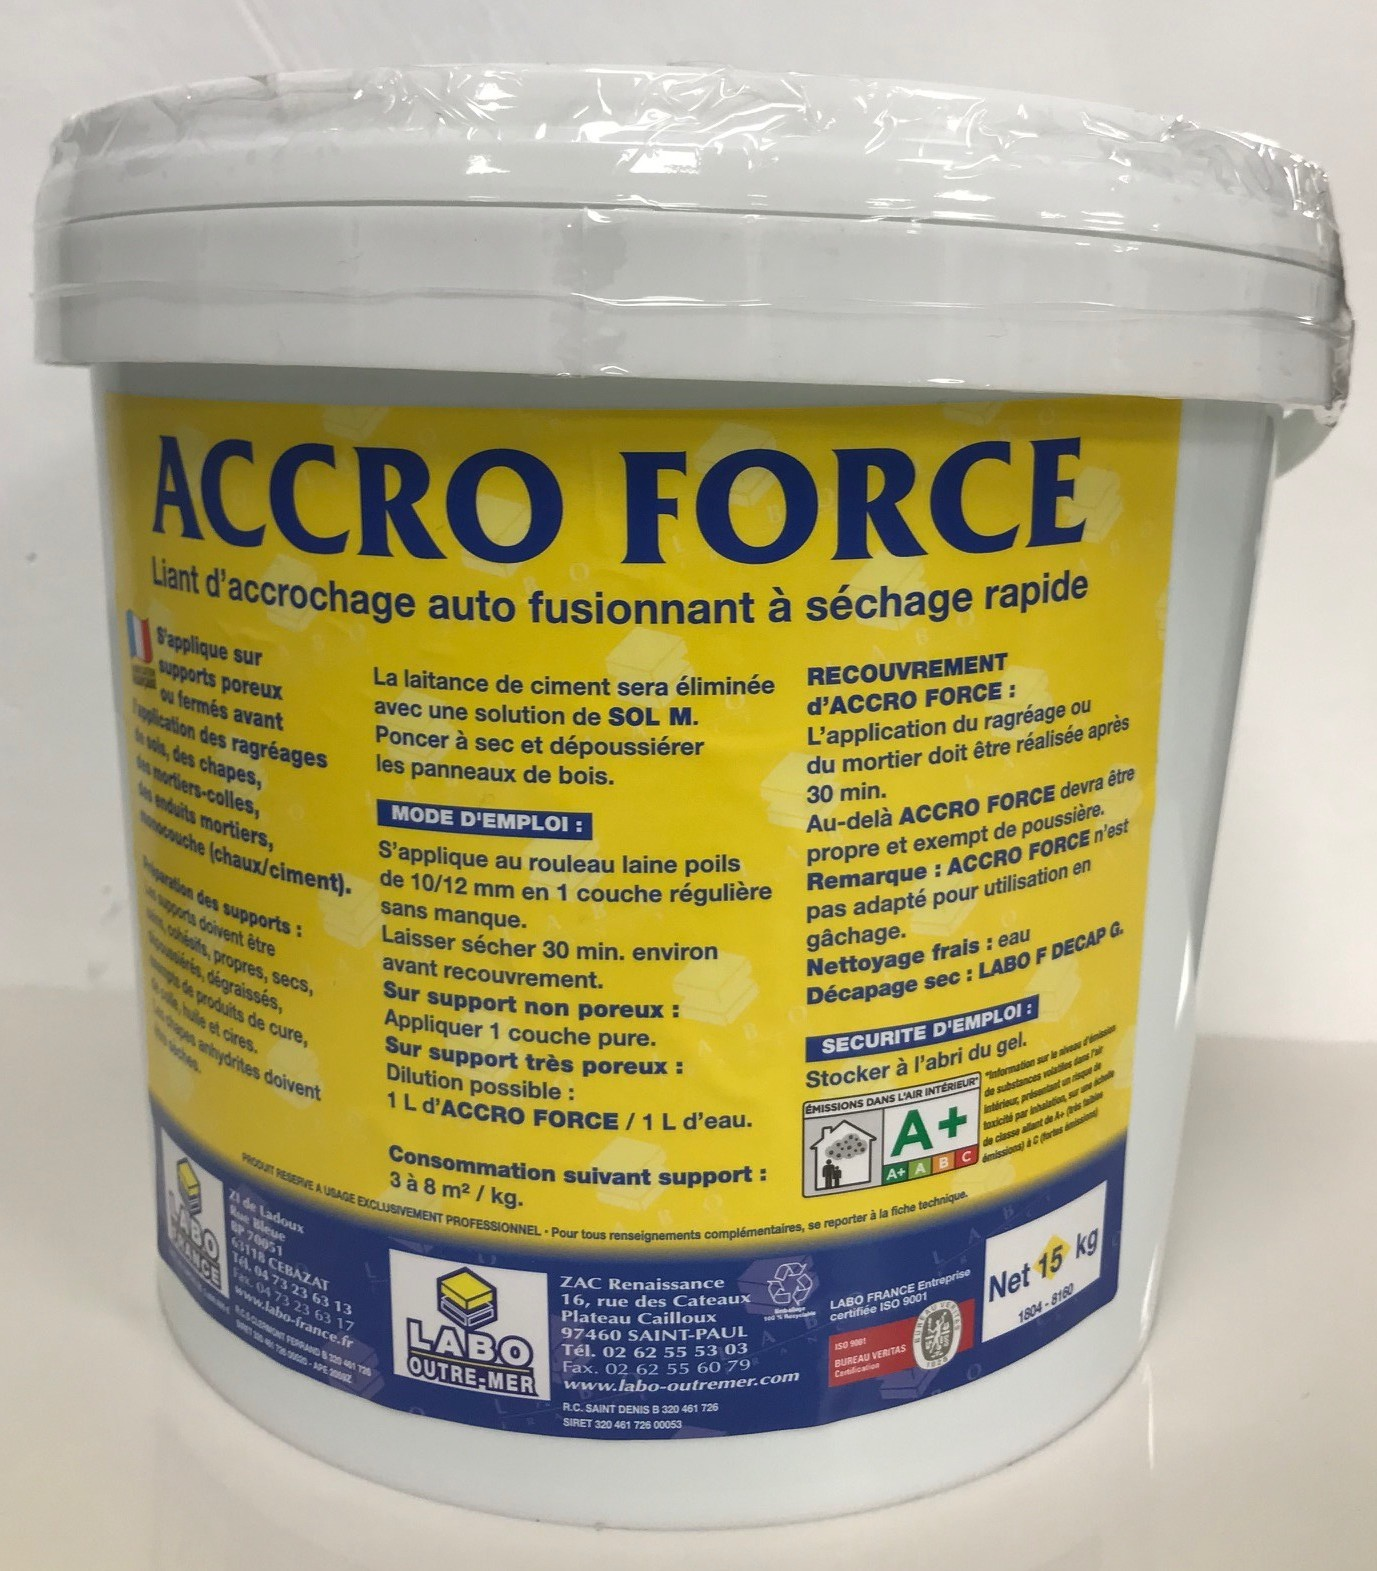 LABO FRANCE ACCRO FORCE 5 KG